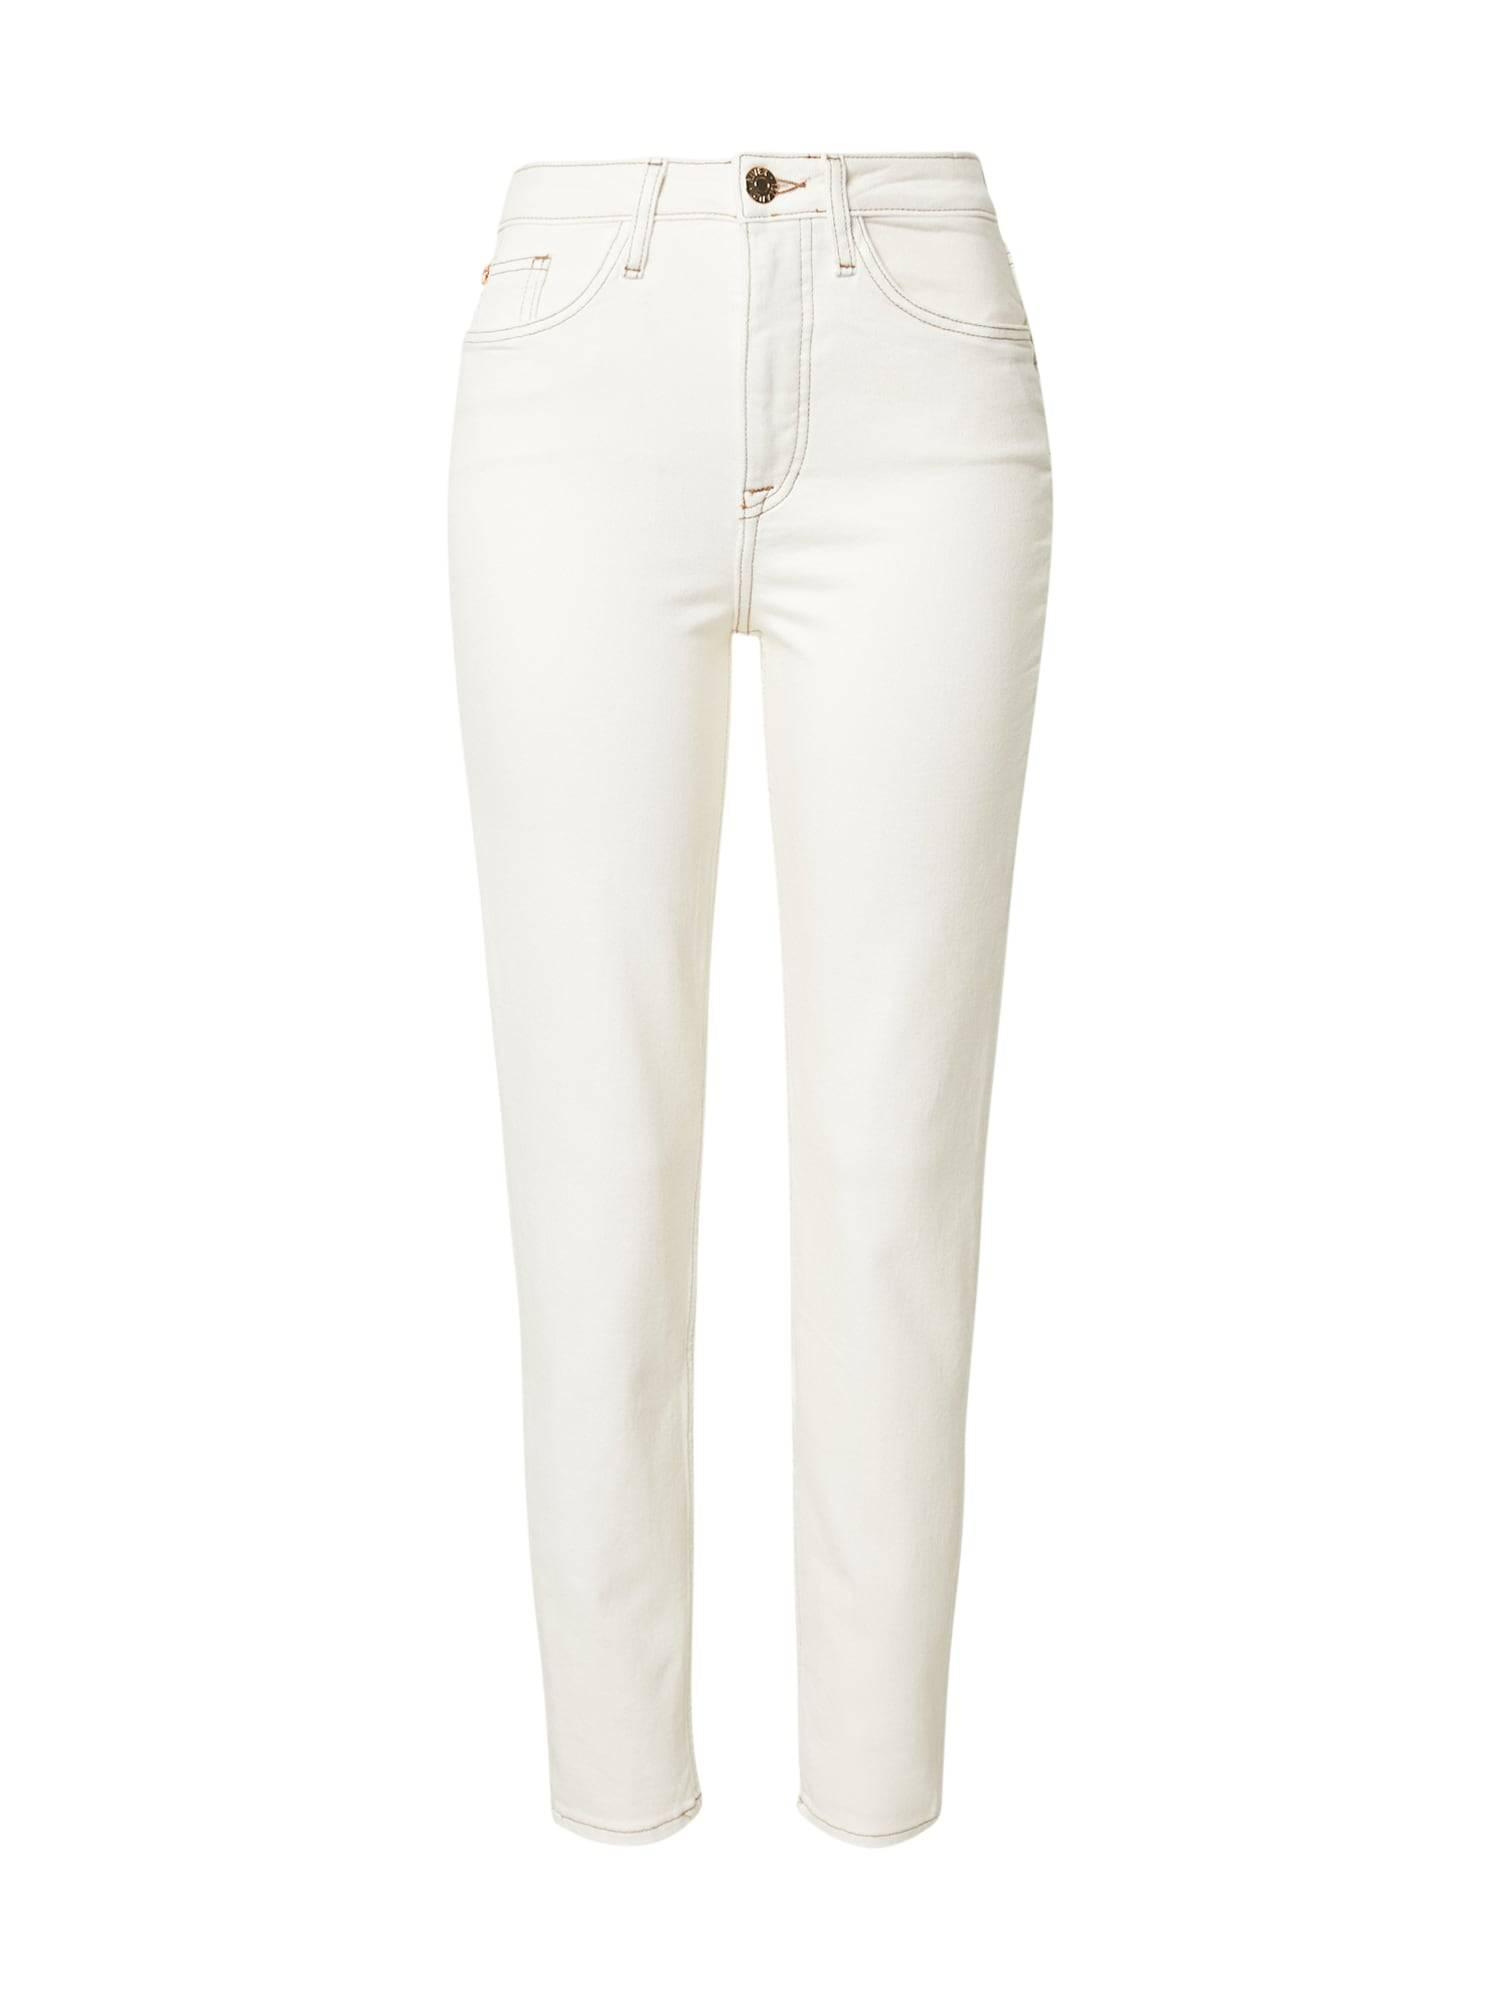 river island jeans 'donna' beige